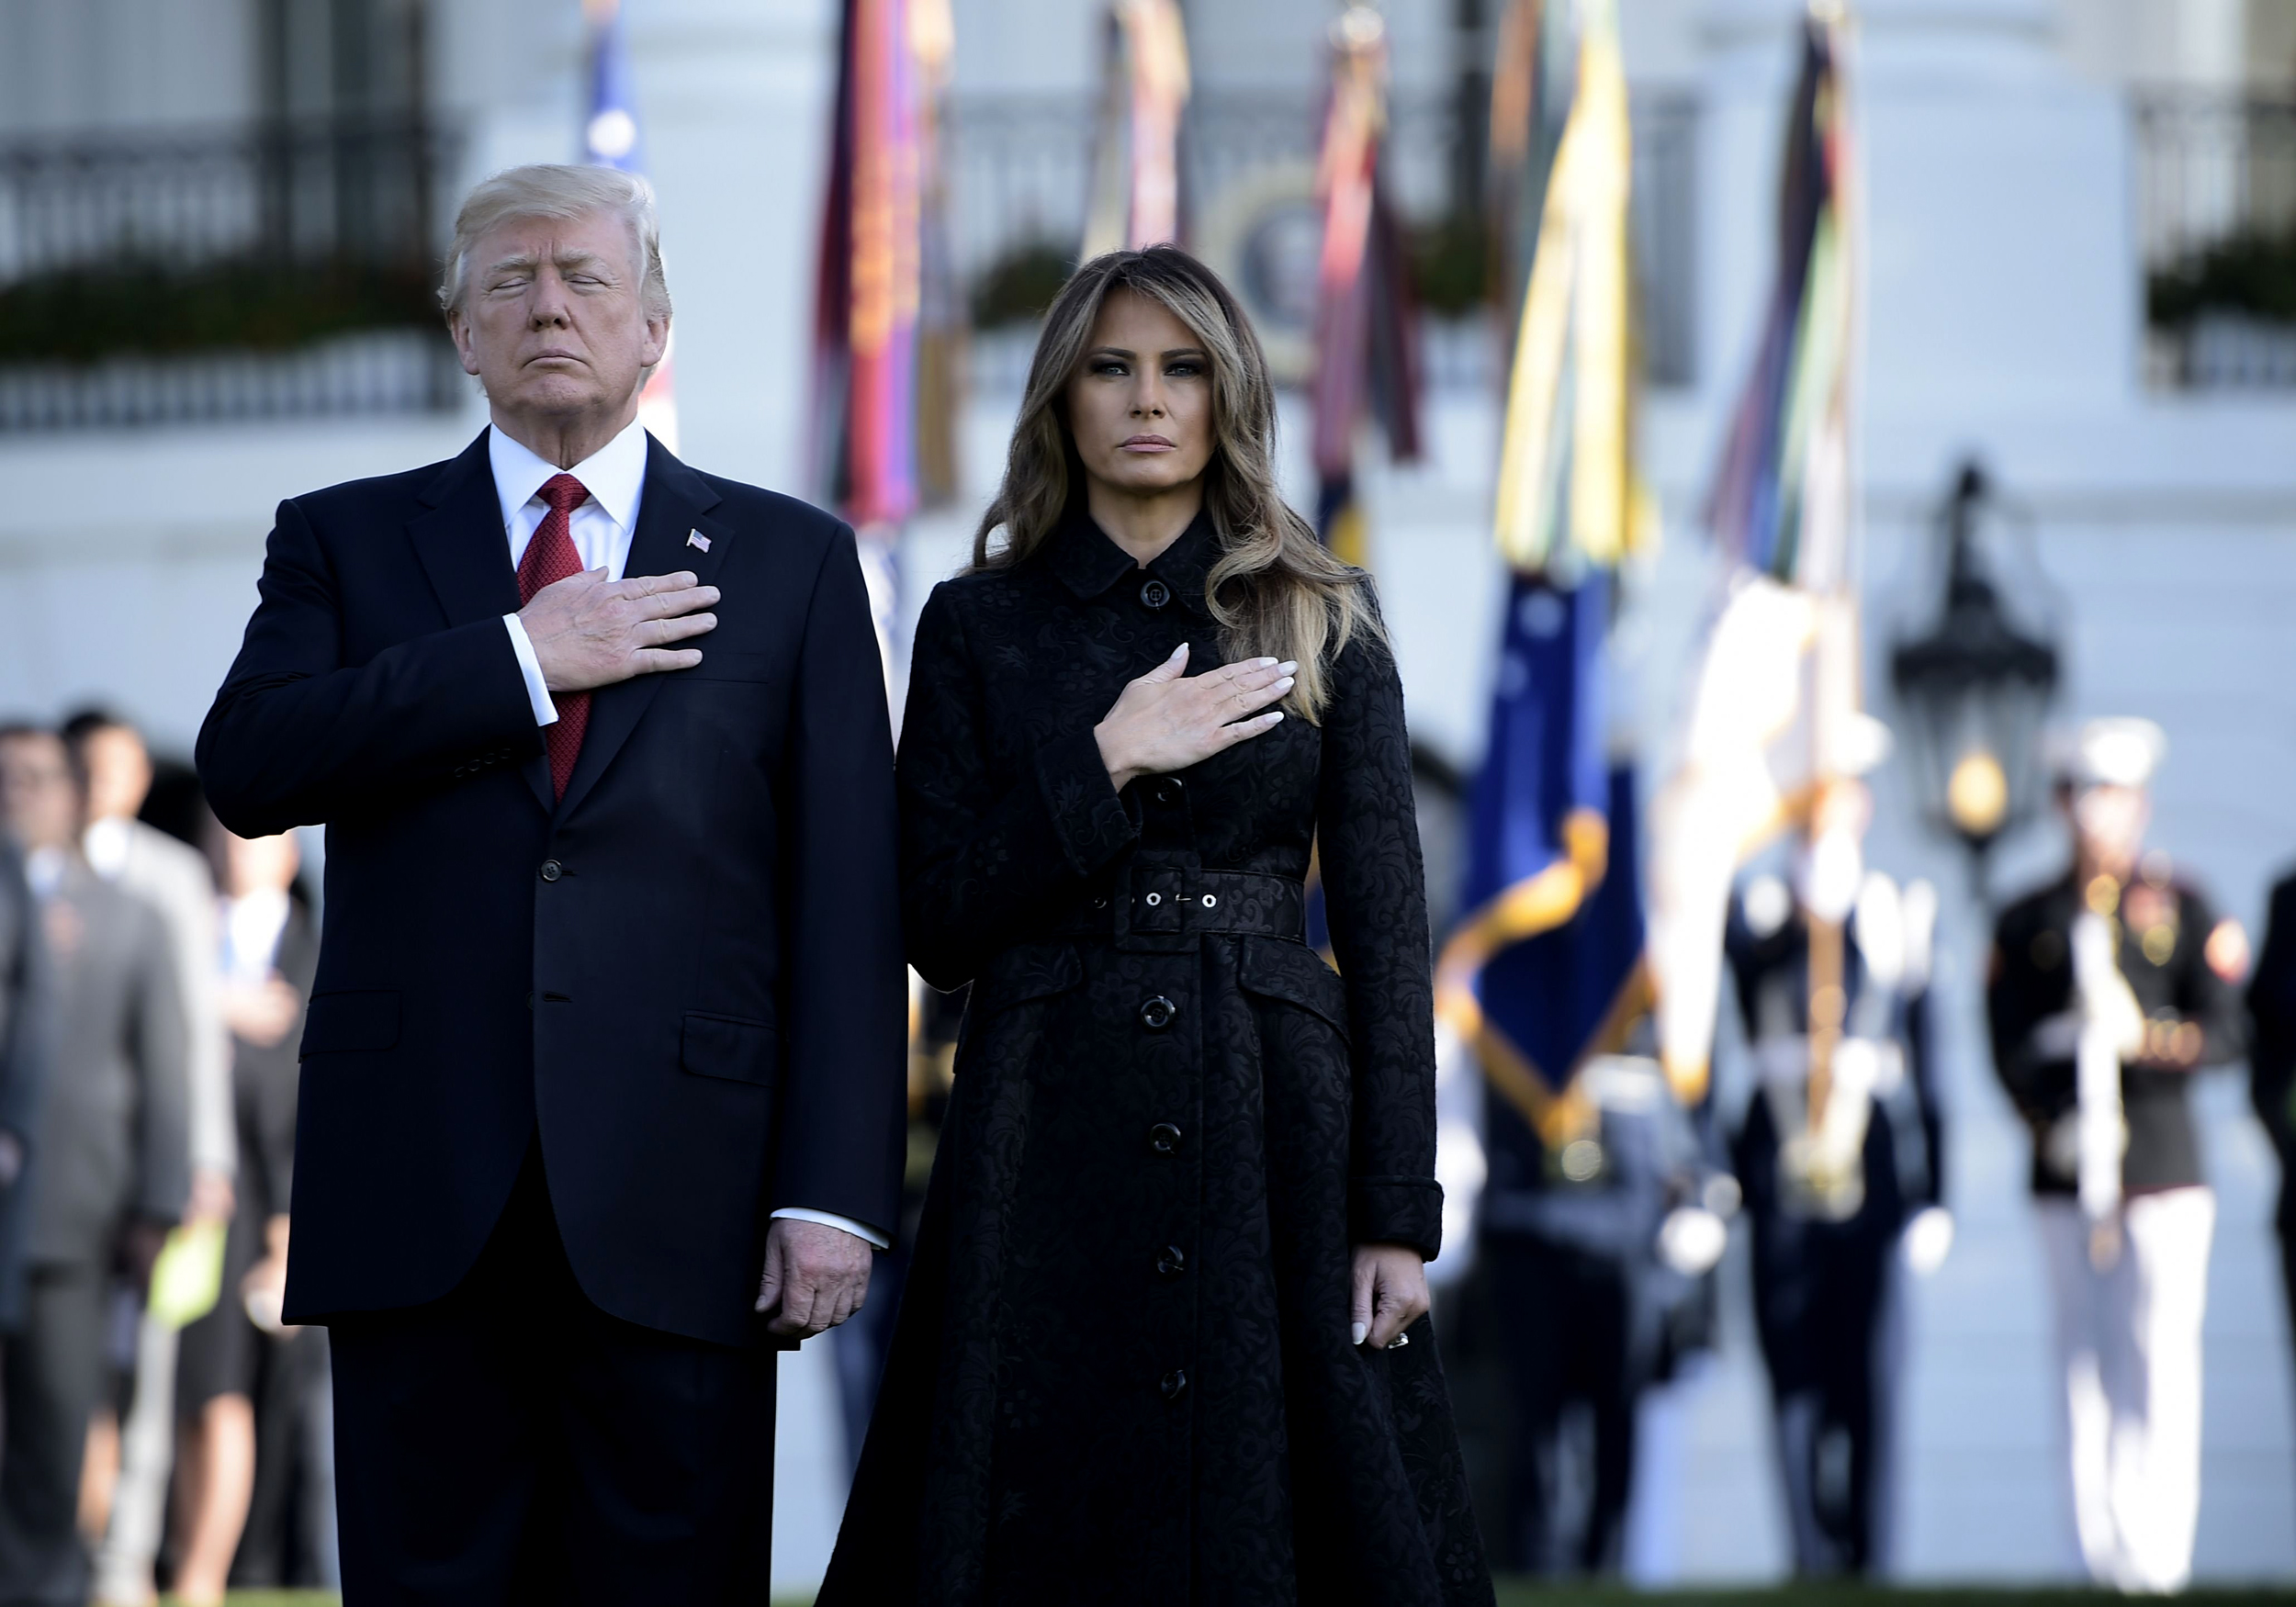 Image: President Donald Trump and First Lady Melania Trump observe a moment of silence on Sept. 11, 2017, at the White House during the 16th anniversary of 9/11.